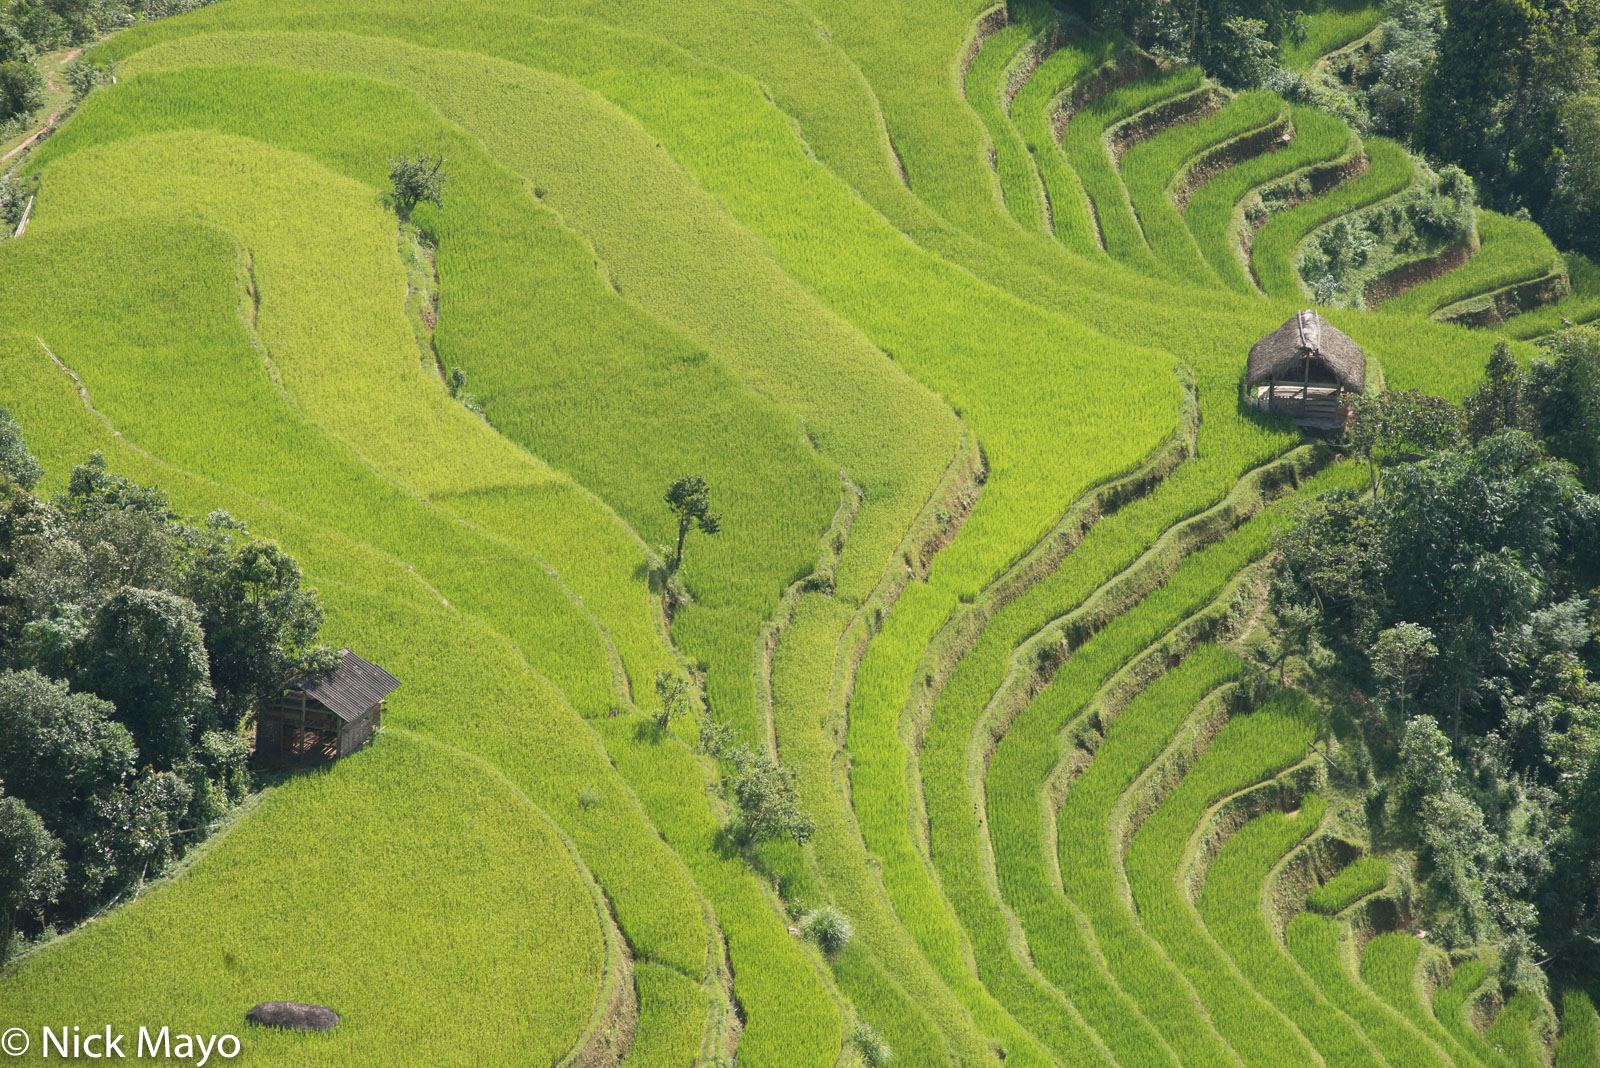 Ha Giang, Hut, Paddy, Vietnam, photo